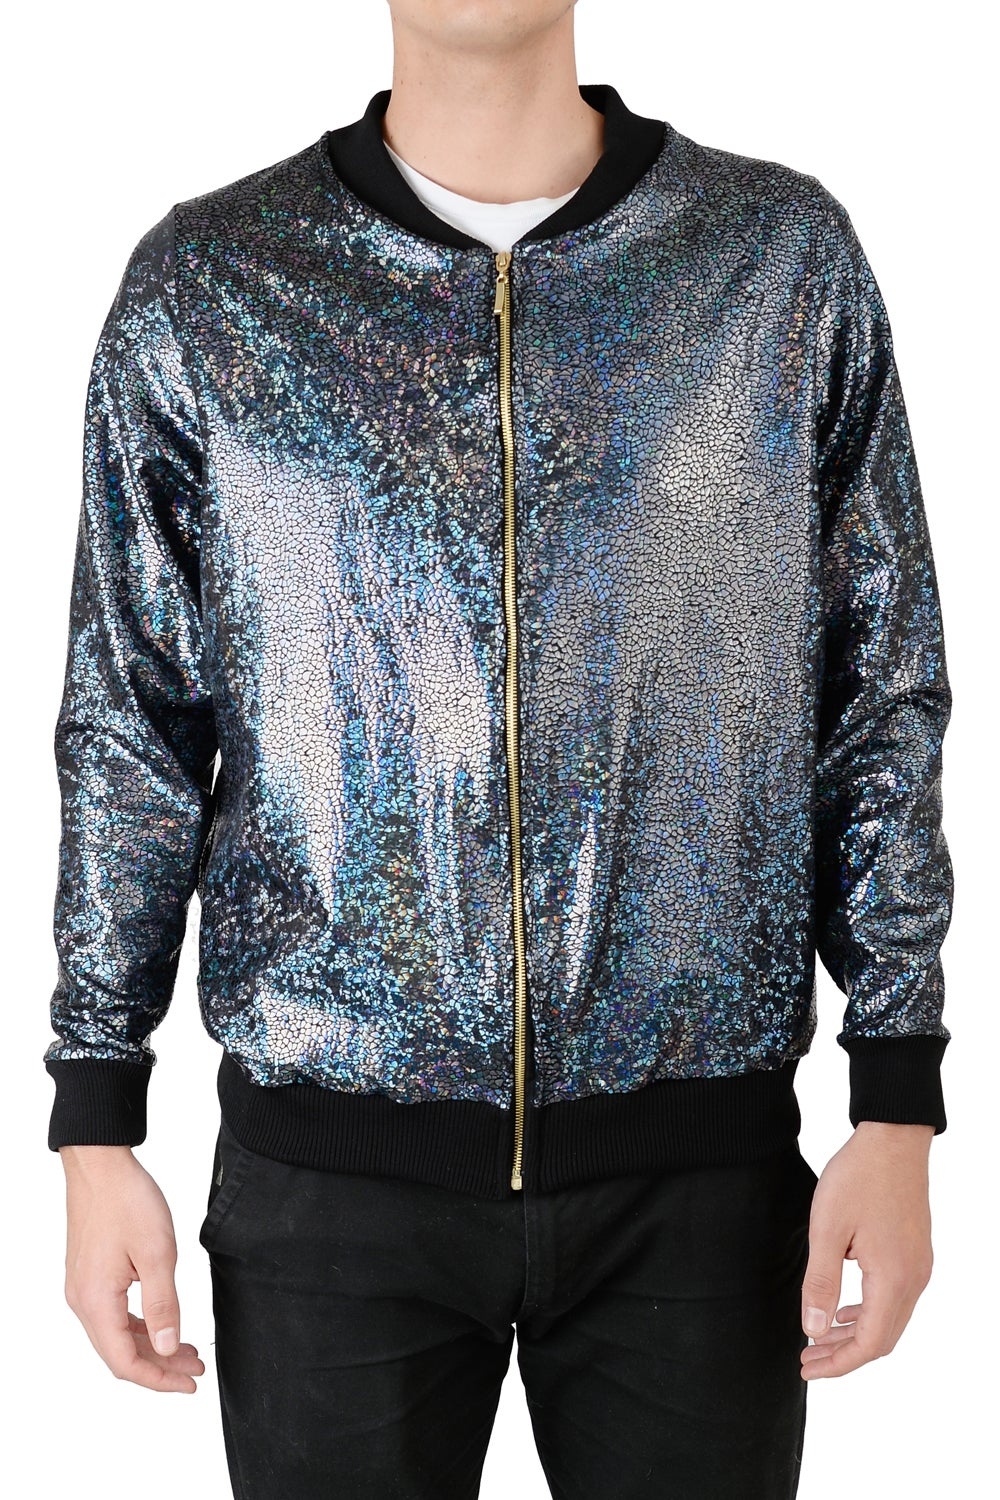 Image of Mens Black Disco Bomber Jacket